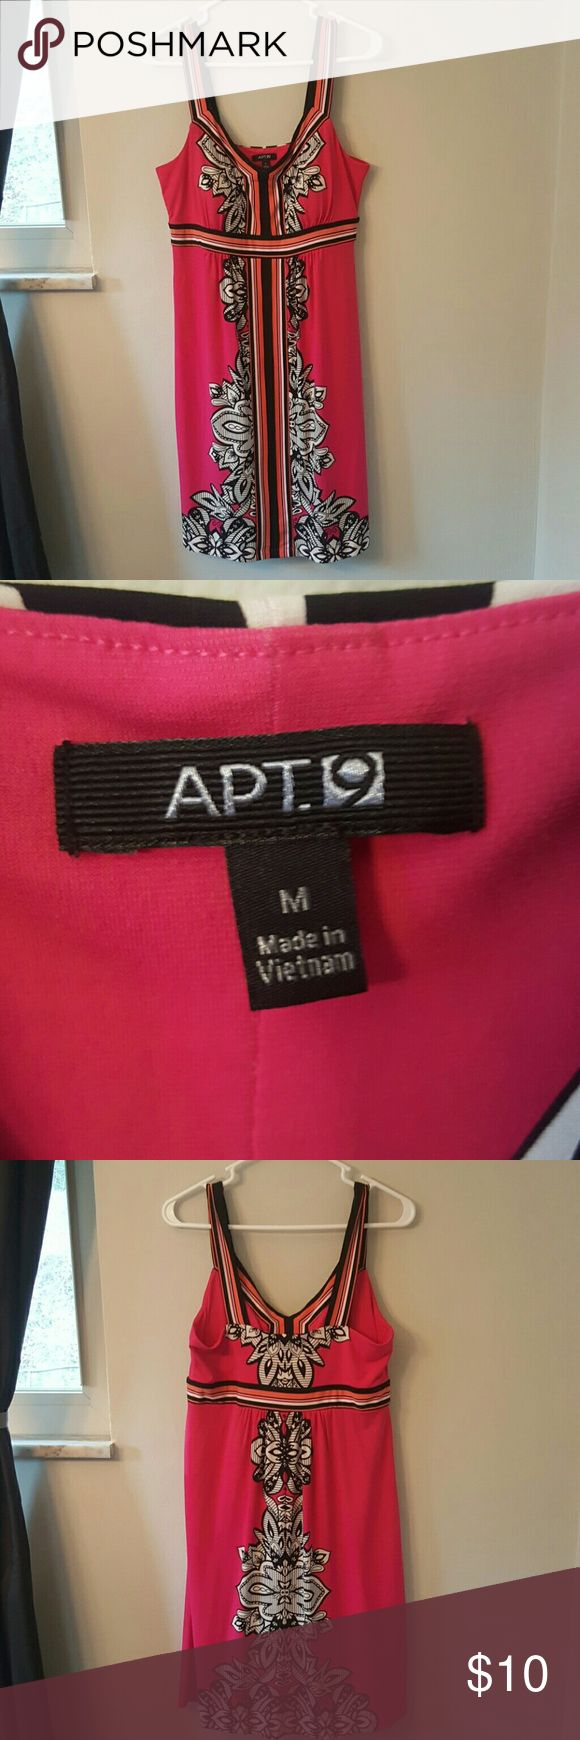 """Apt 9 Sundress Apt 9 hot pink sundress, nylon/spandex blend. Super stretchy and comfortable. Thin padding in cups. Approximate 39"""" from shoulder strap to hem. Apt. 9 Dresses"""